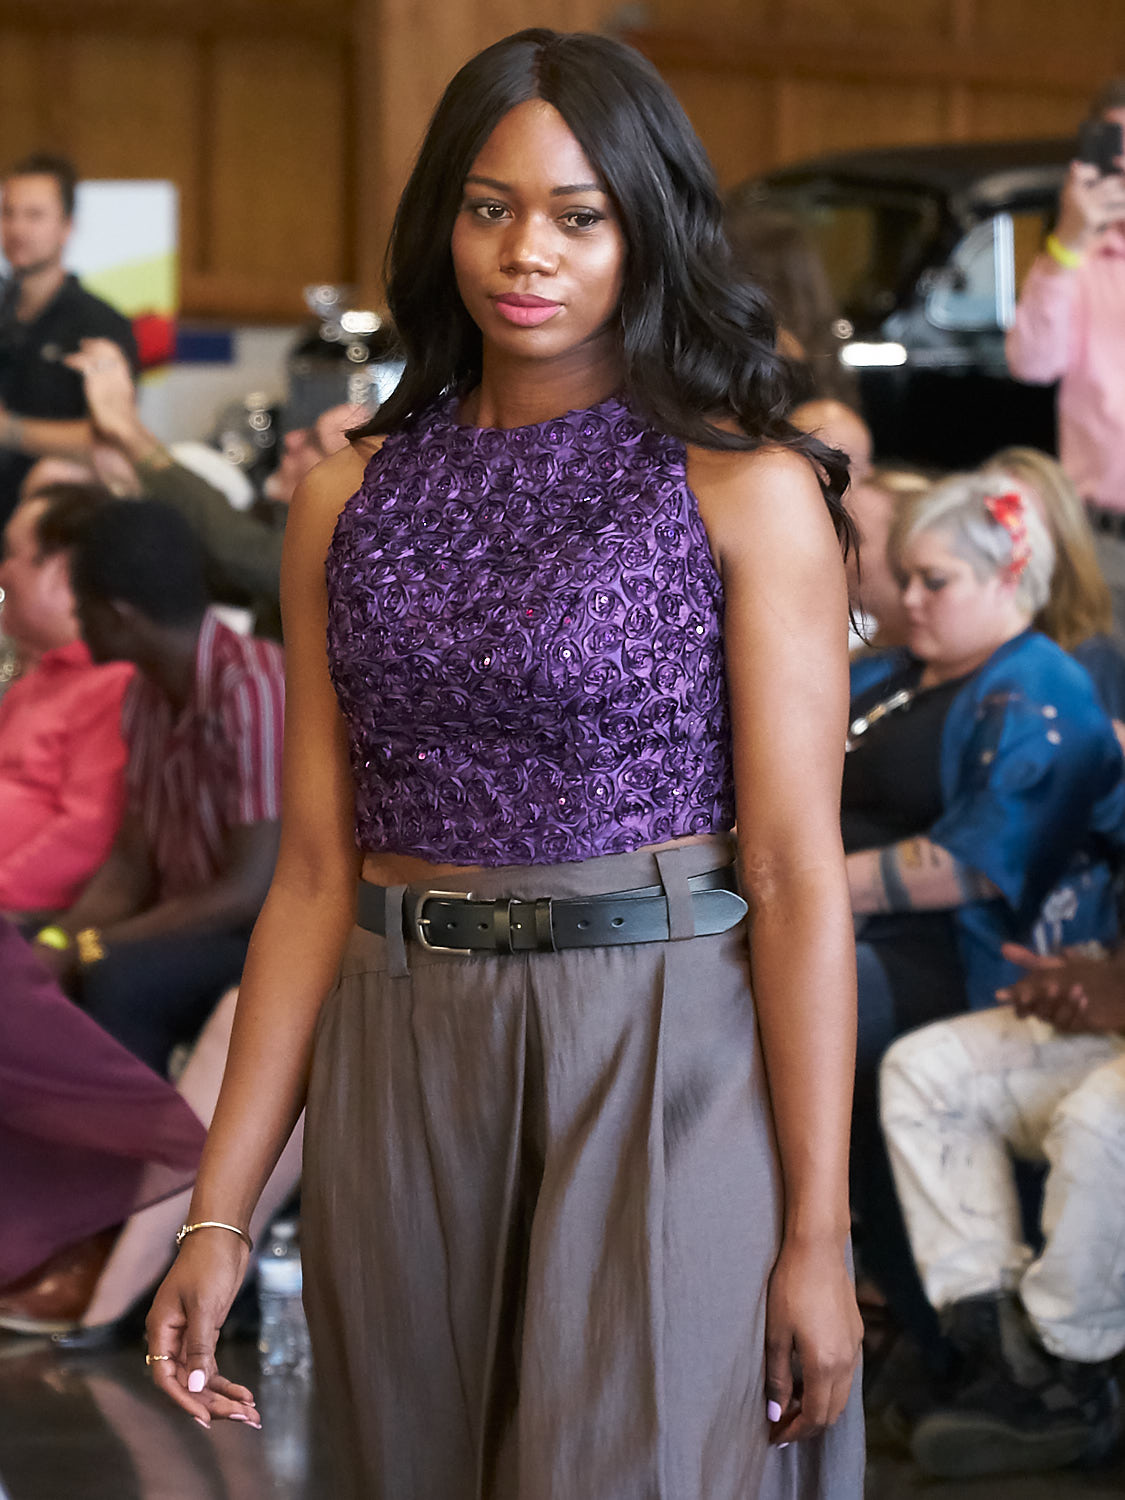 AMVISUALS-Couture-Cars-Fashion-Show-LeMay-Museum-Tacoma-Fashion-9.jpg